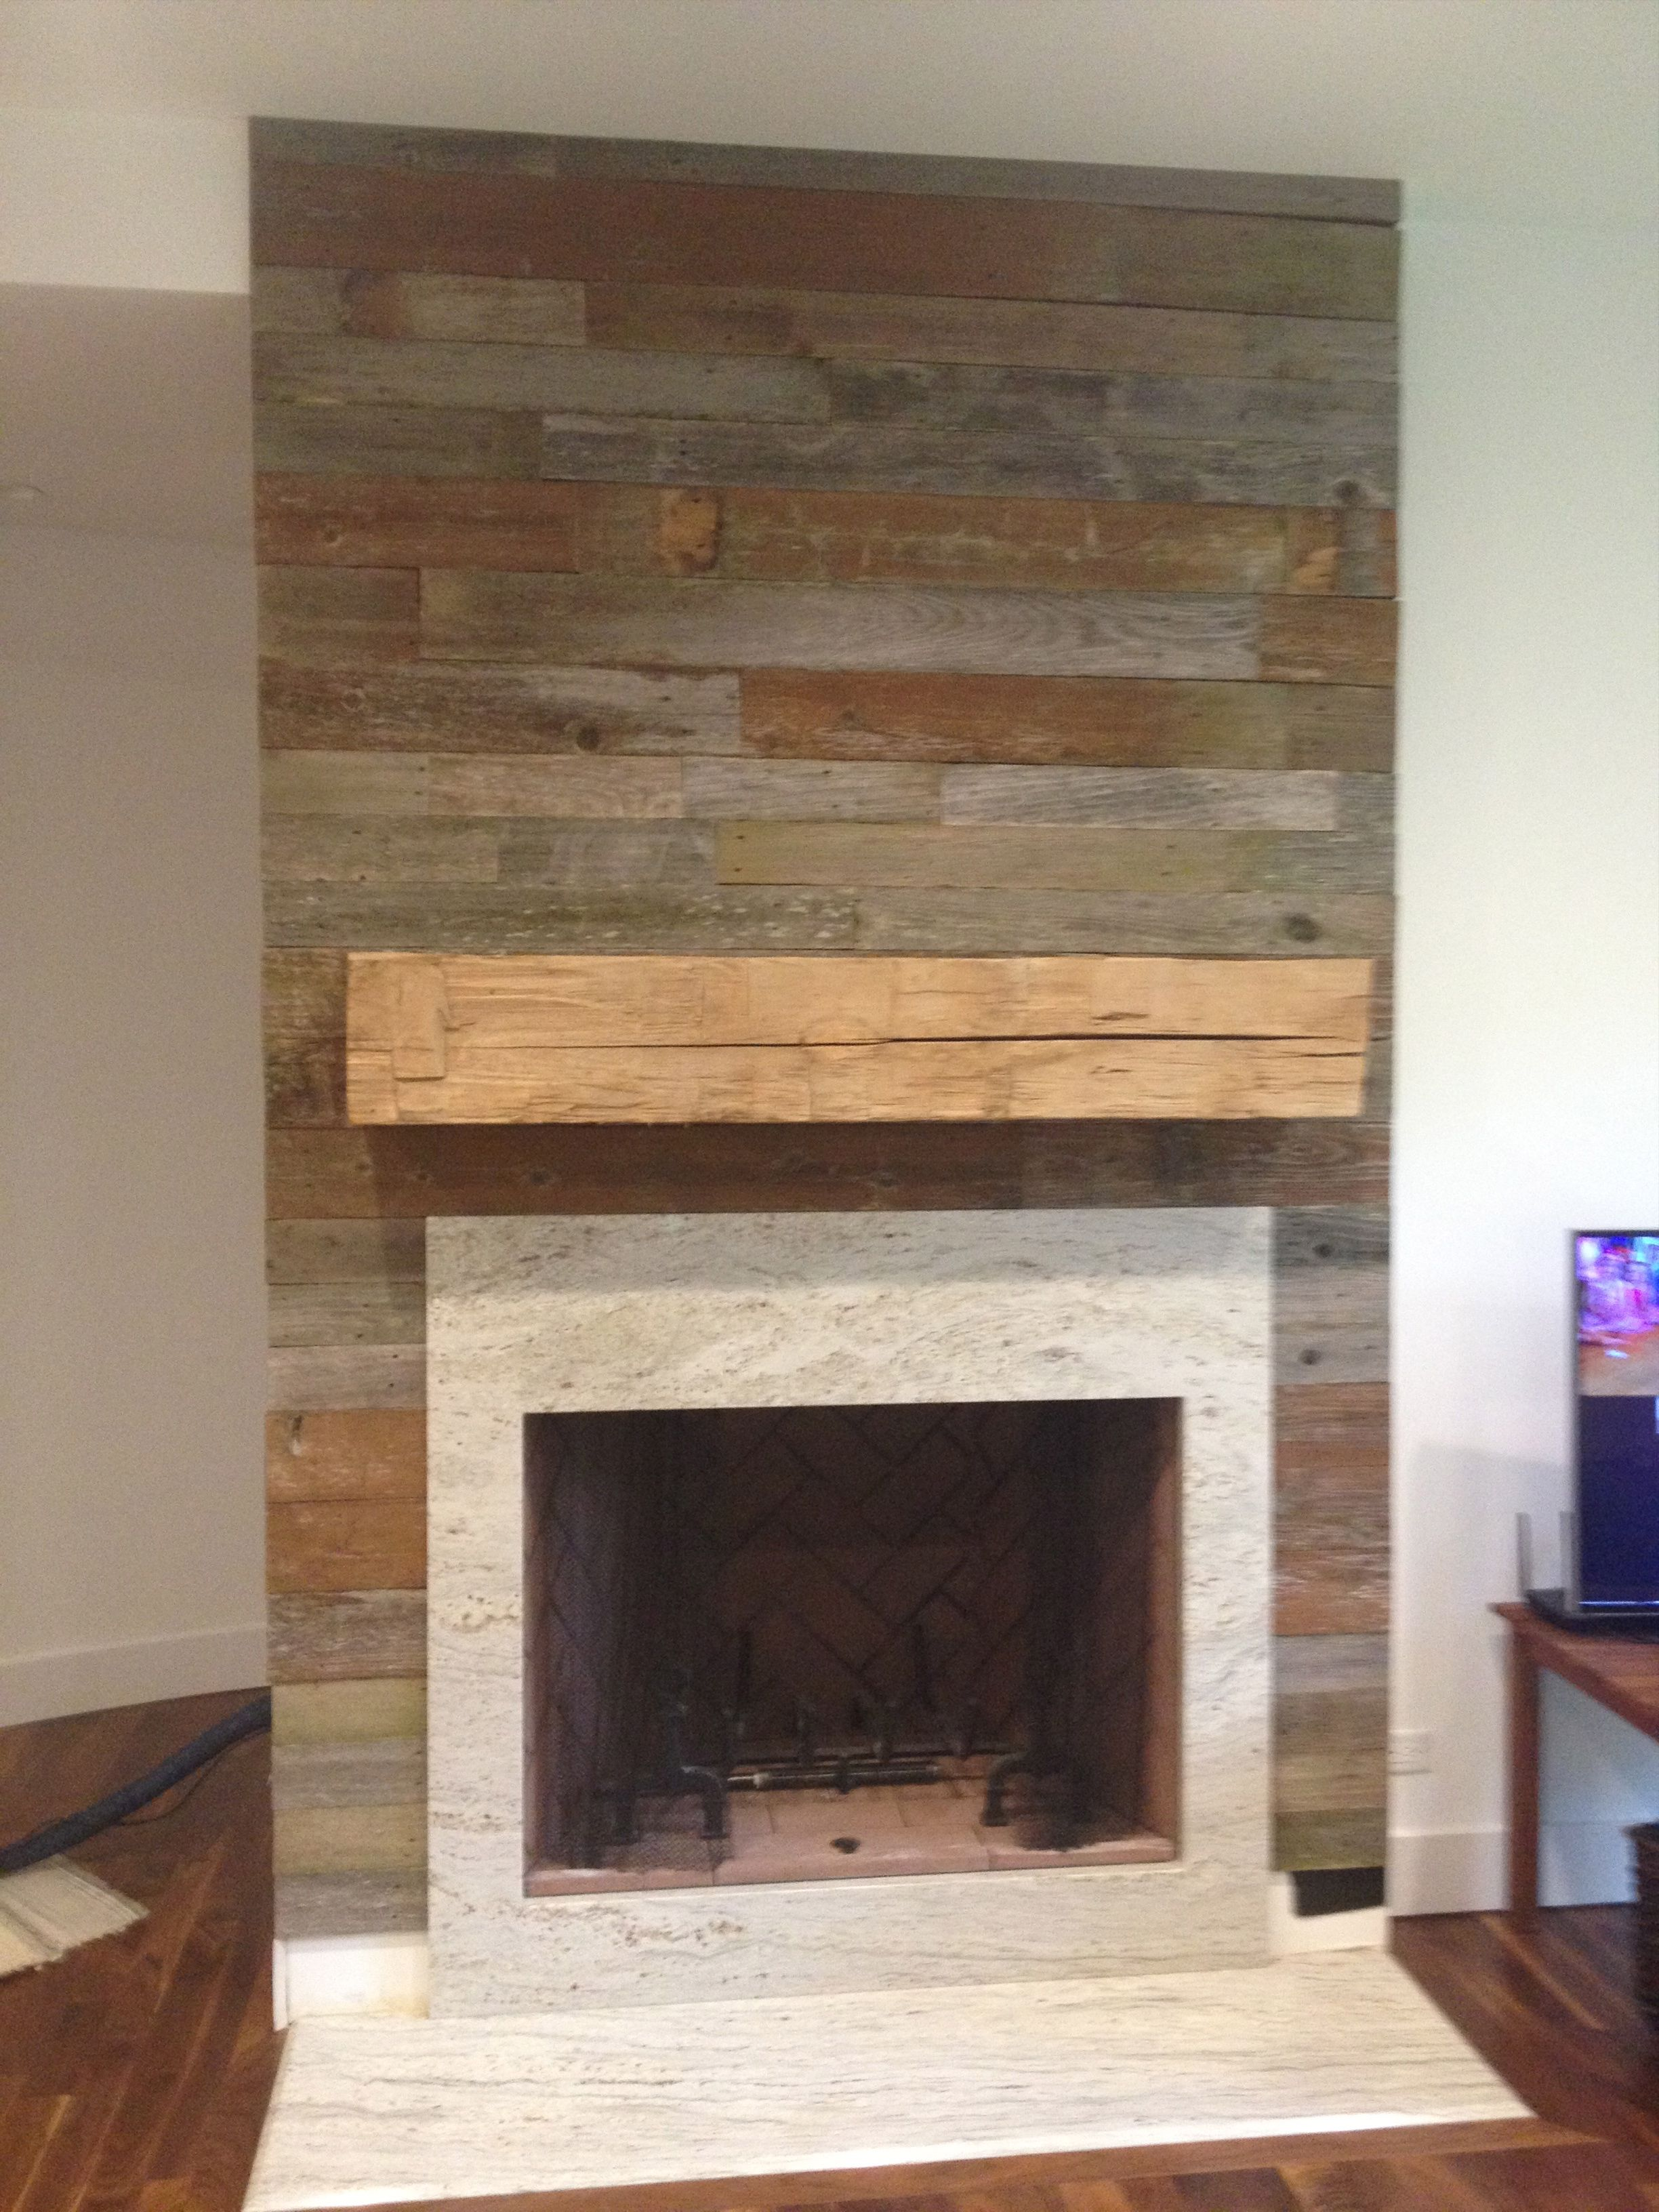 Reclaimed Wood Fireplace Surround And Mantel Fireplace Remodel